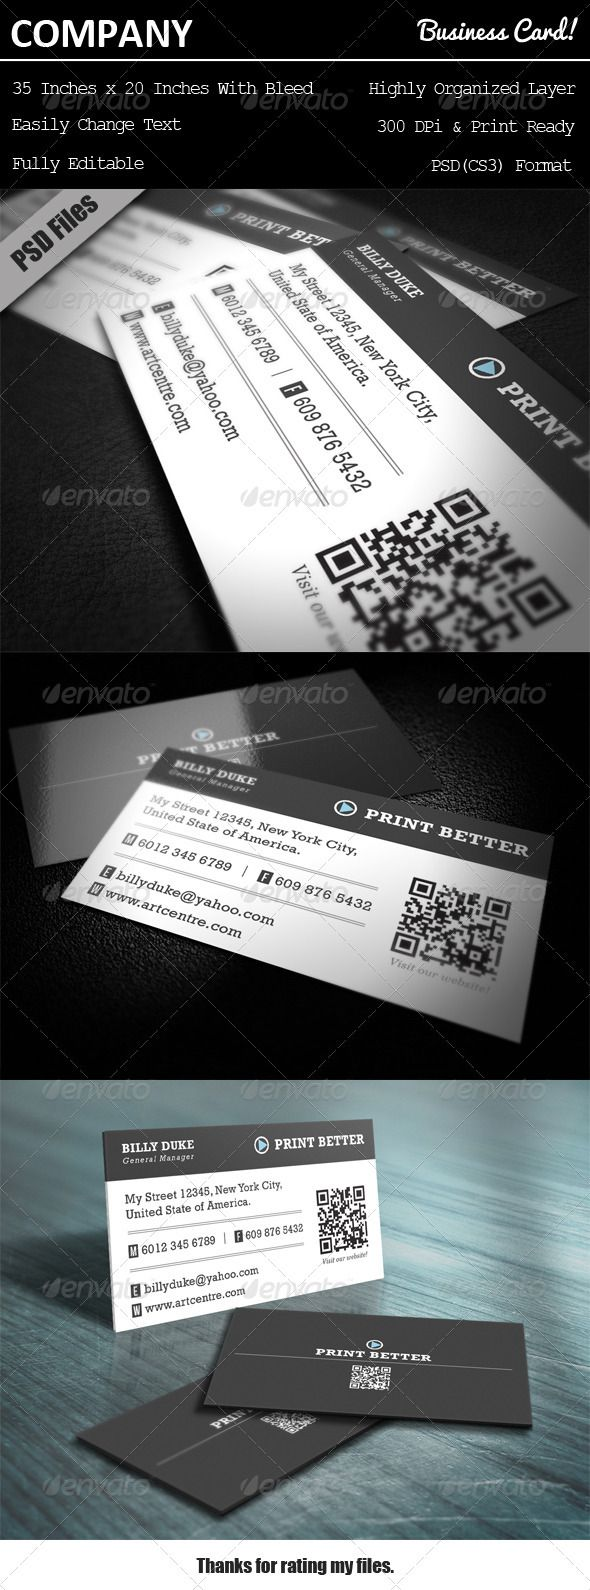 101 best Print Templates images on Pinterest | Print templates ...